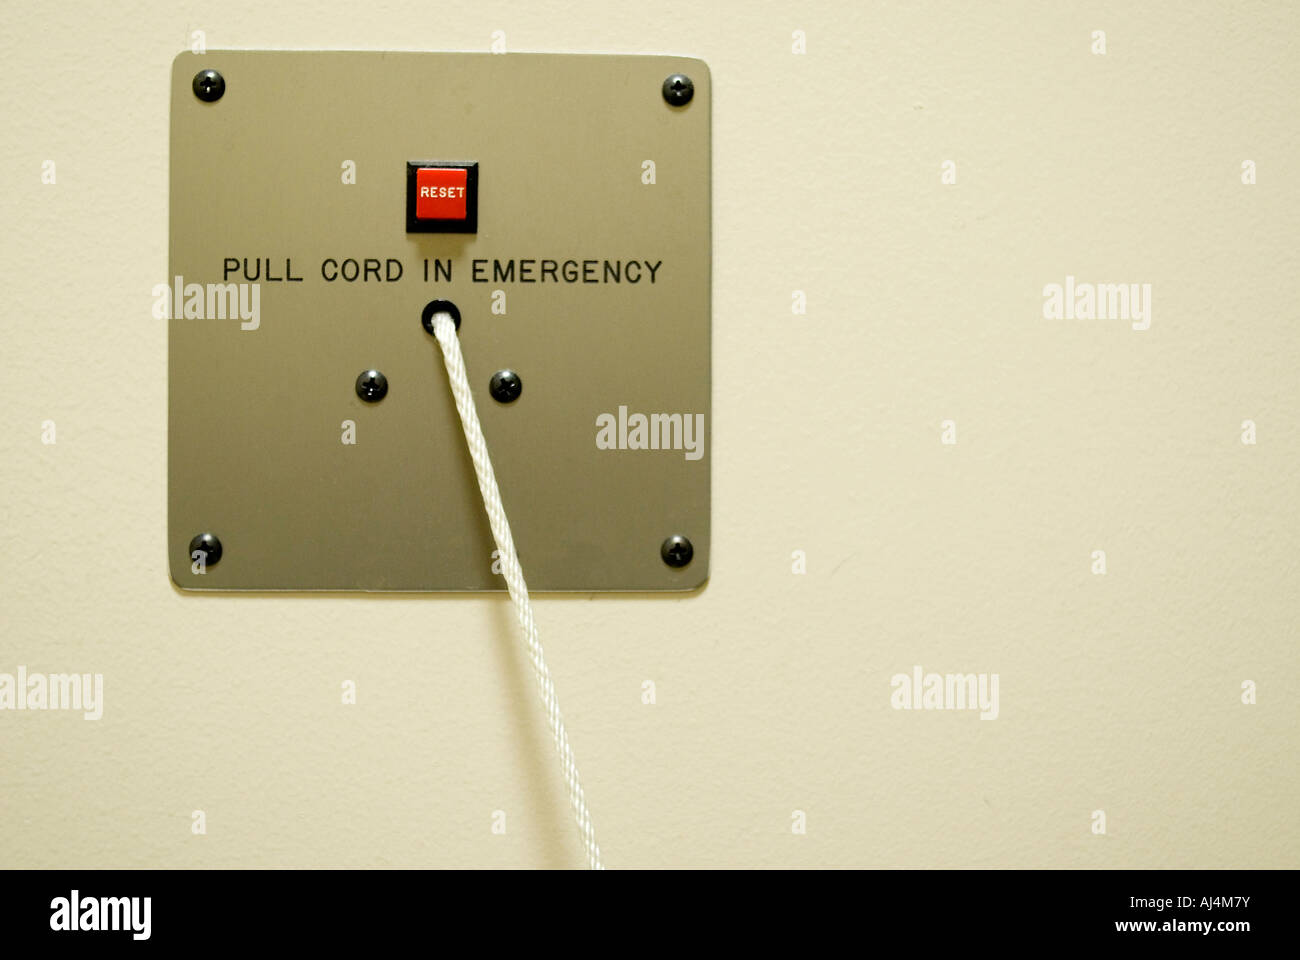 emergency pull cord on wall in hospital Stock Photo: 14620574 - Alamy